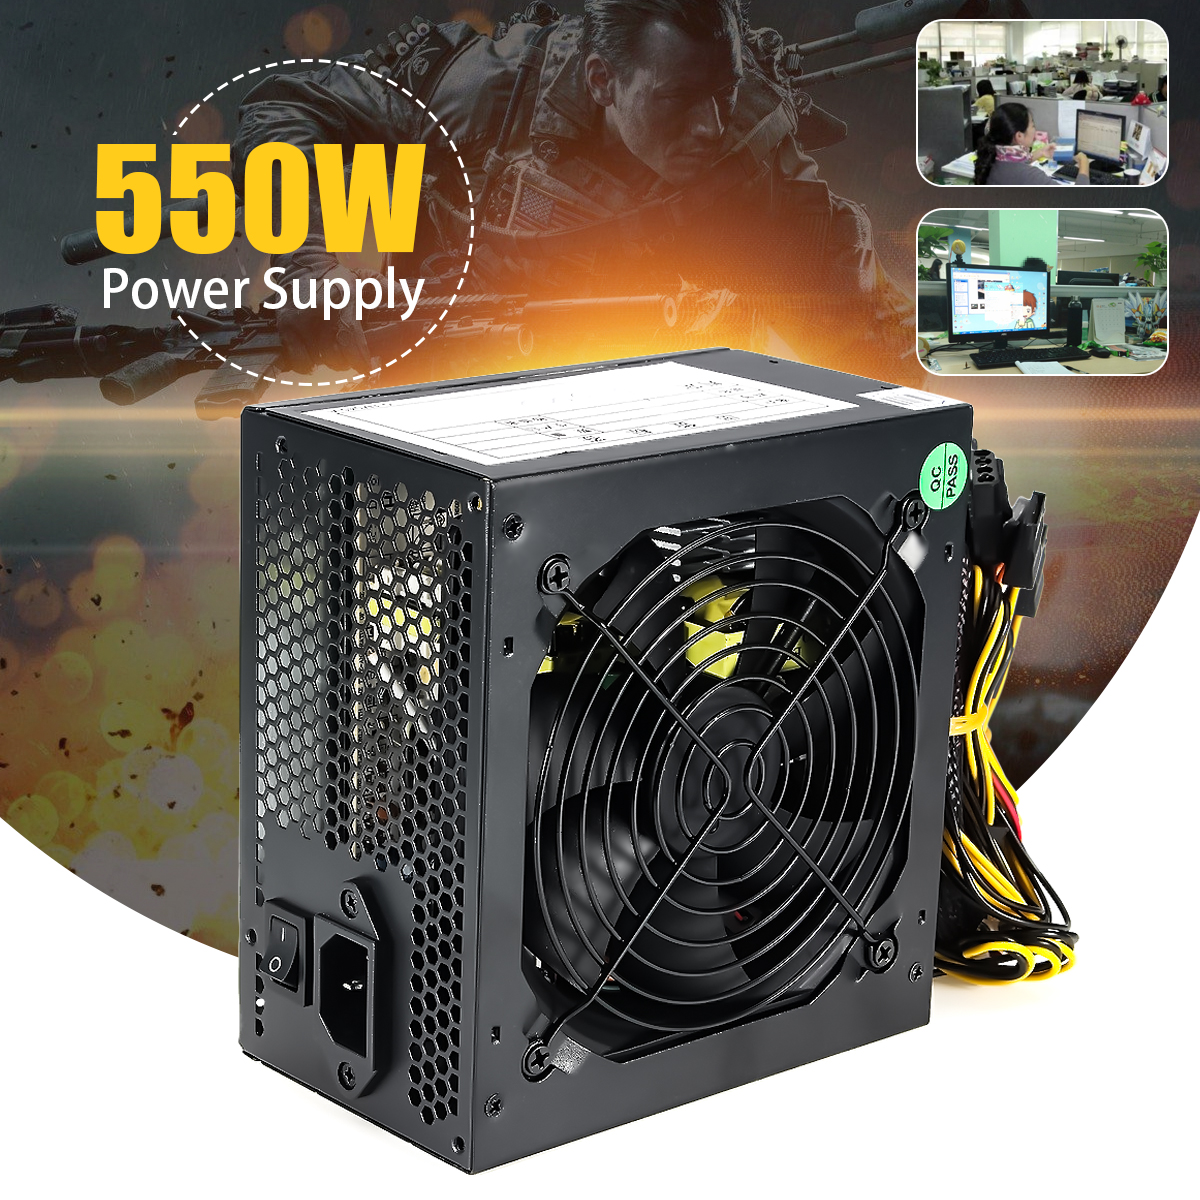 400W 550W Peak- PC PSU Power Supply Black Gaming 120mm Fan Blue LED 20/24pin 12V ATX High Quality Computer Power Supply For BTC xinghang 400w pc computer power supply 12v 400w power supply psu peak 500w switching atx power gaming pc desktop 24pin